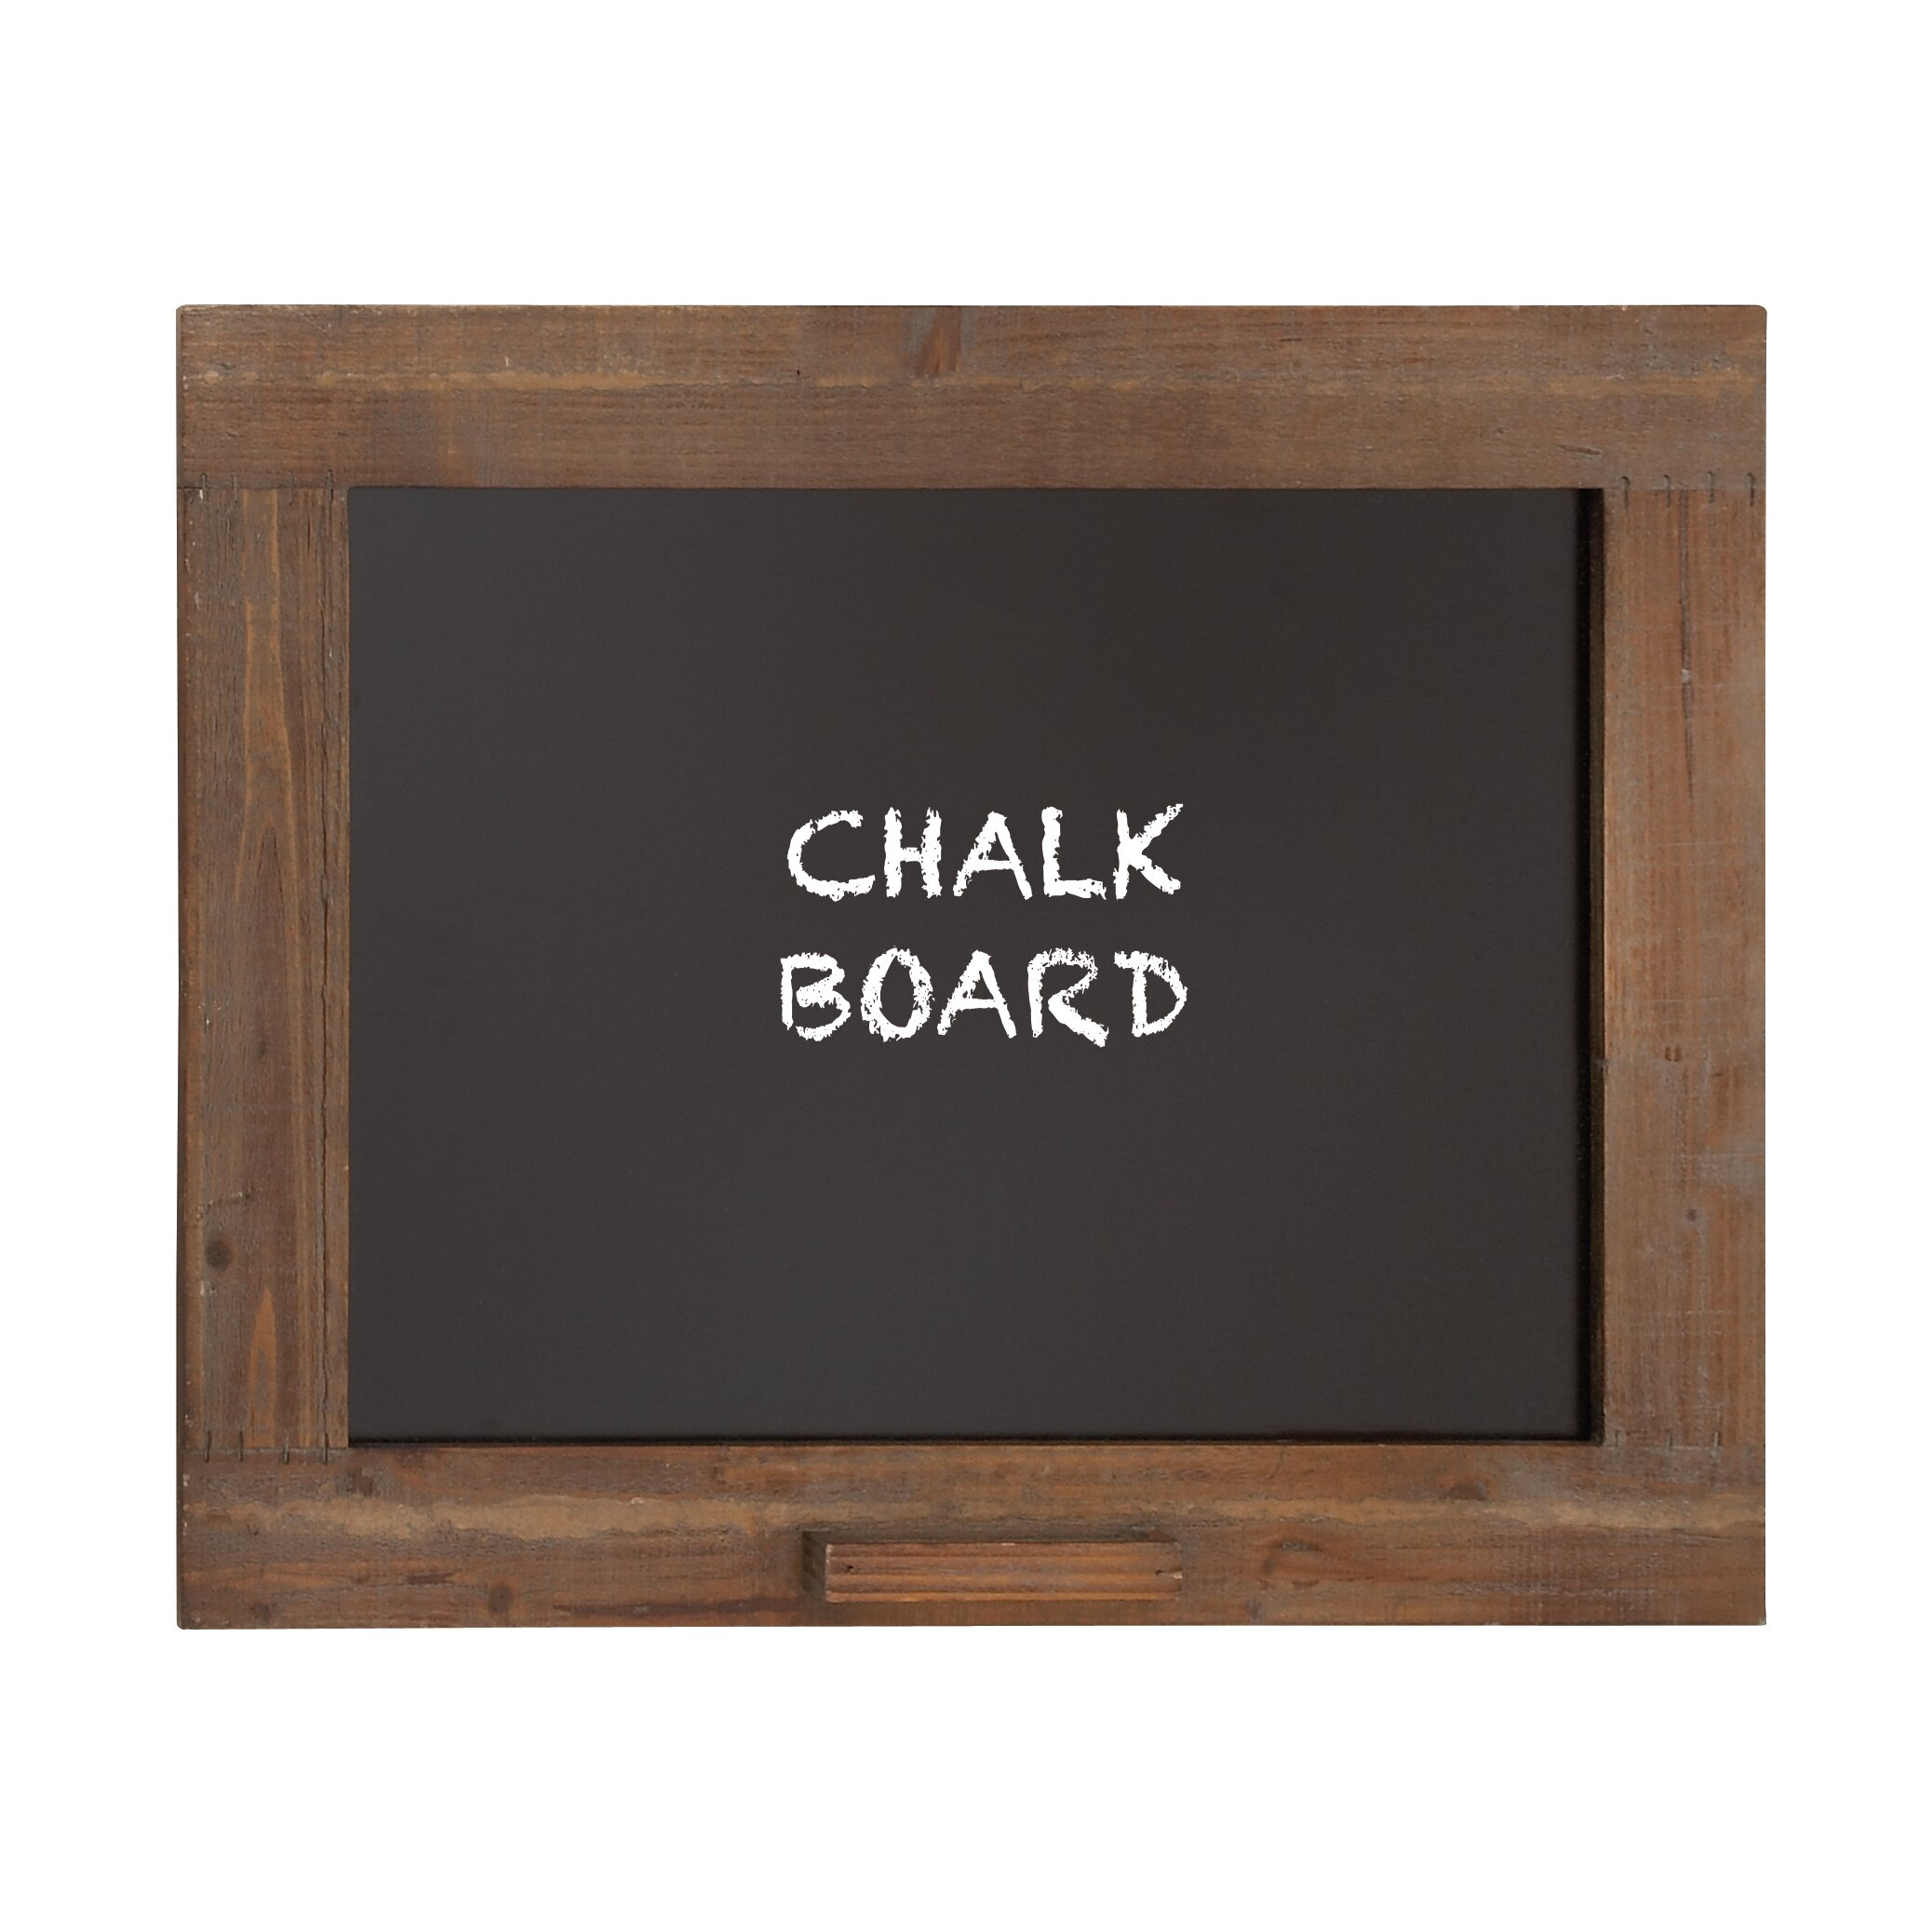 cole grey wooden frame with chalkboard